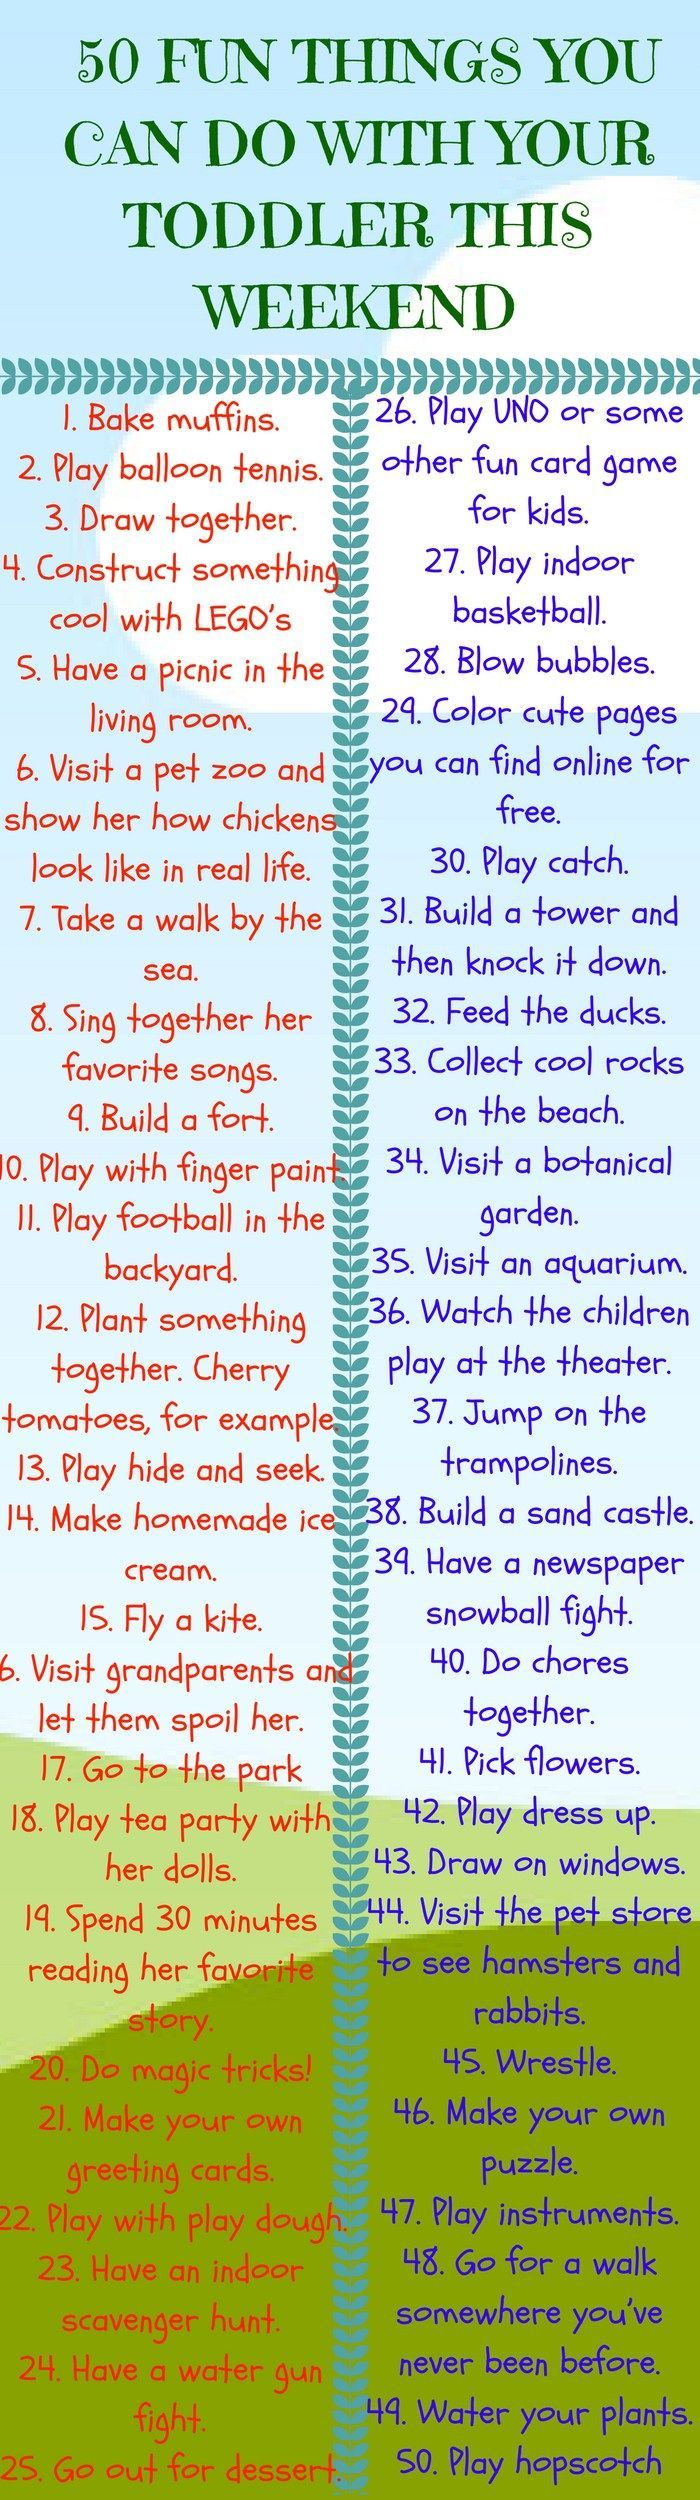 50 Fun Things You Can Do With Your Toddler This Weekend Toddler Fun Kids Toddler Activities